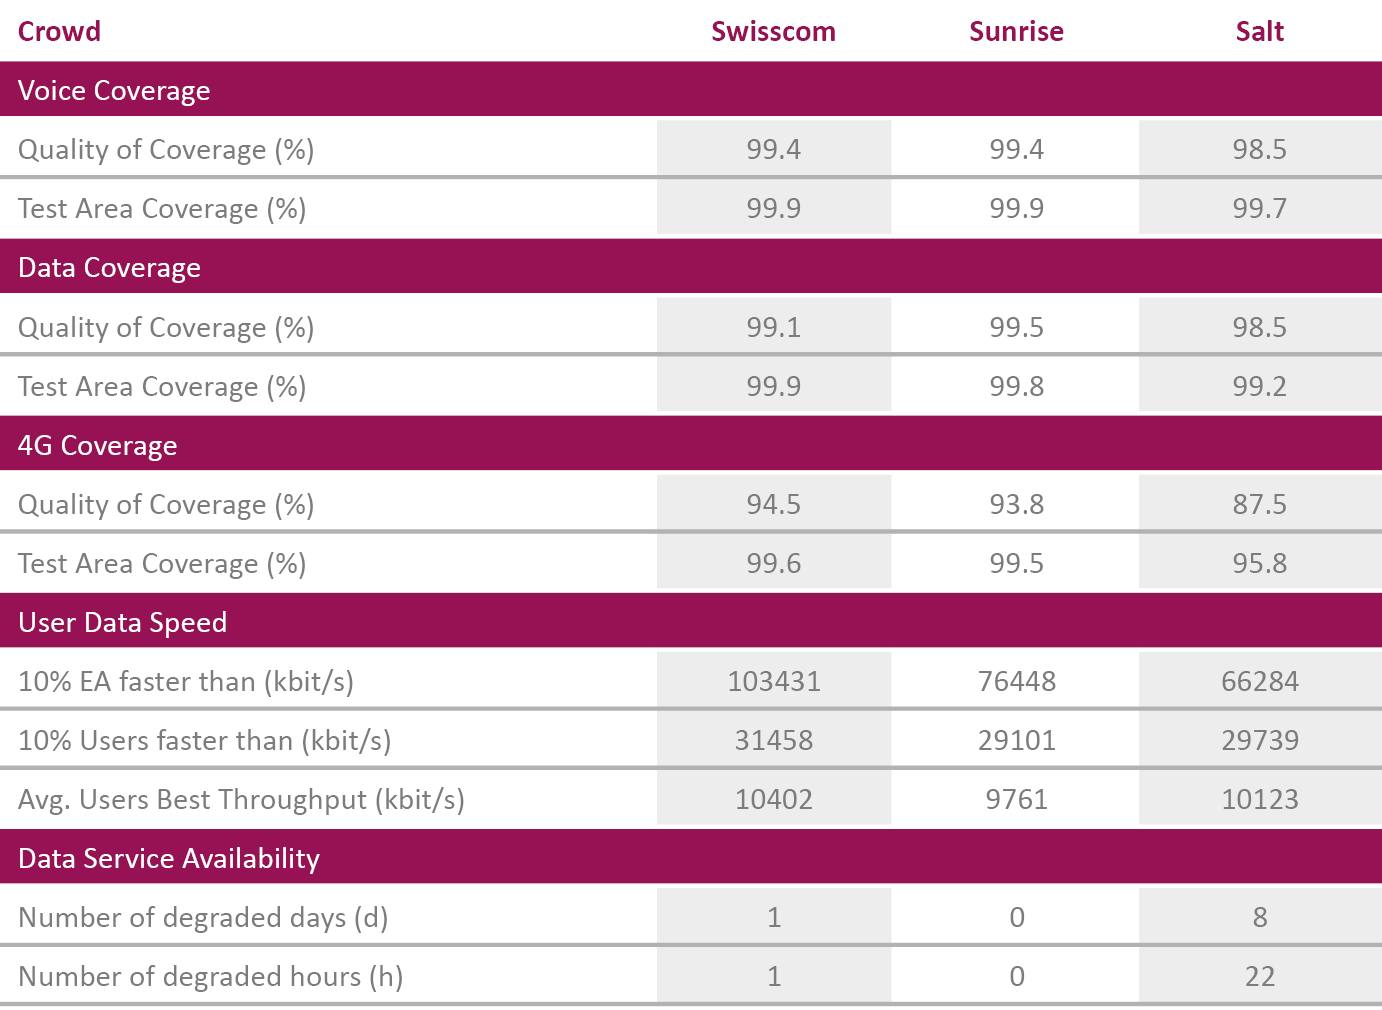 CH_Tabelle_CrowdOverall_2019_englisch.png